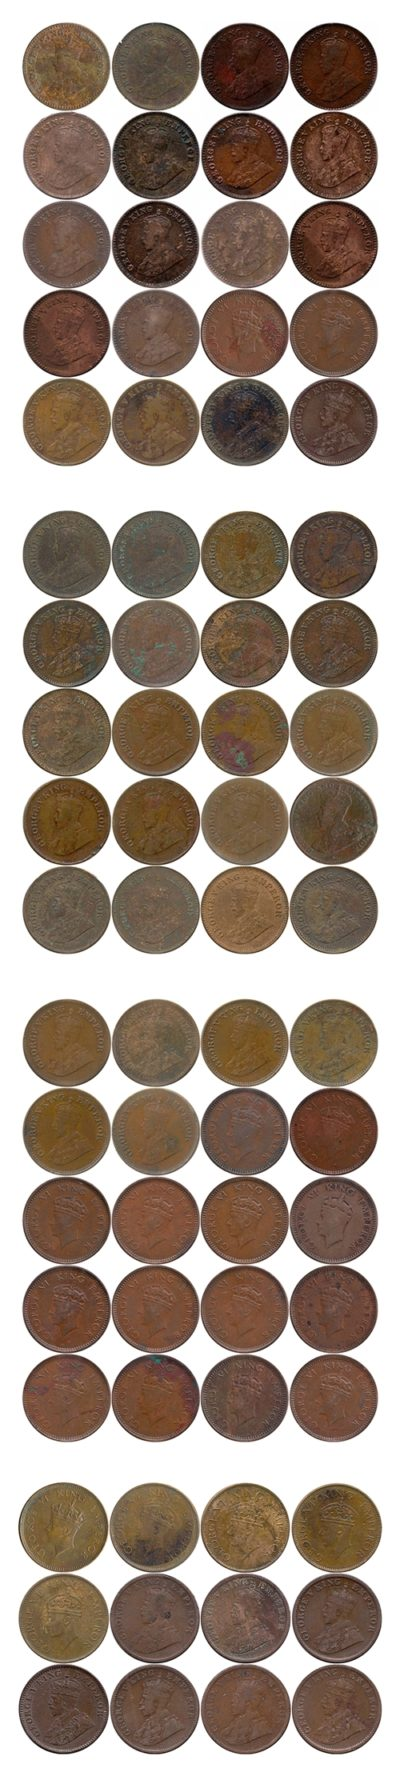 1/12 +1/2 + 1/4 anna & pice - Kings from 1915 to 1940 Set of 72 copper coins Best Buy